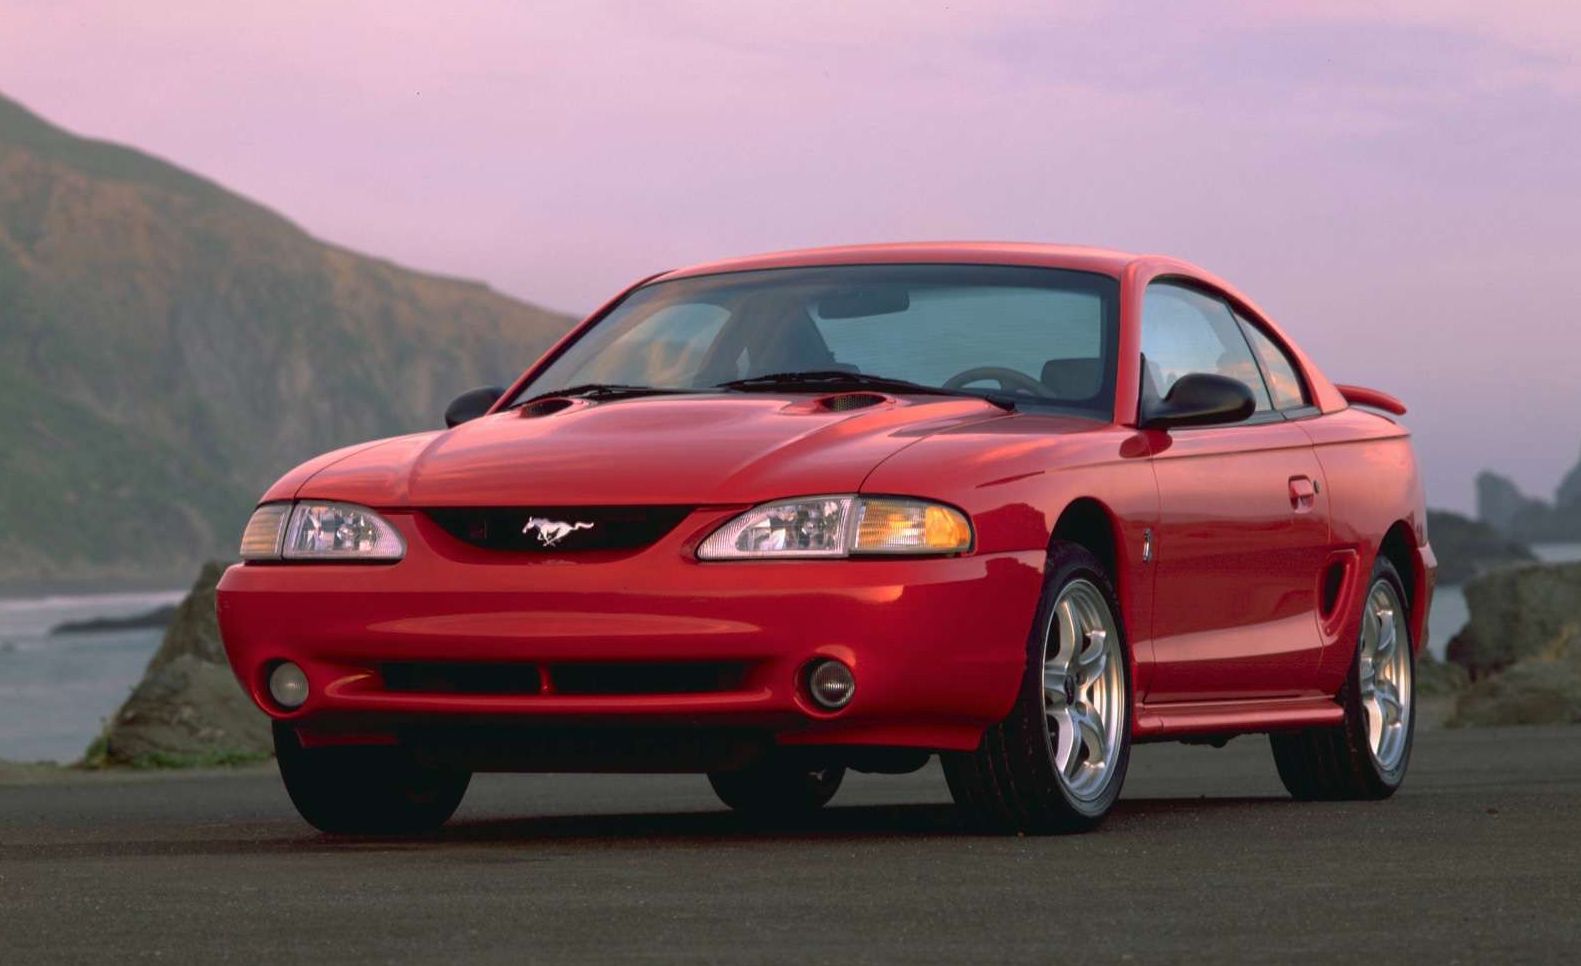 4th Generation Ford Mustang Maintenance Schedules